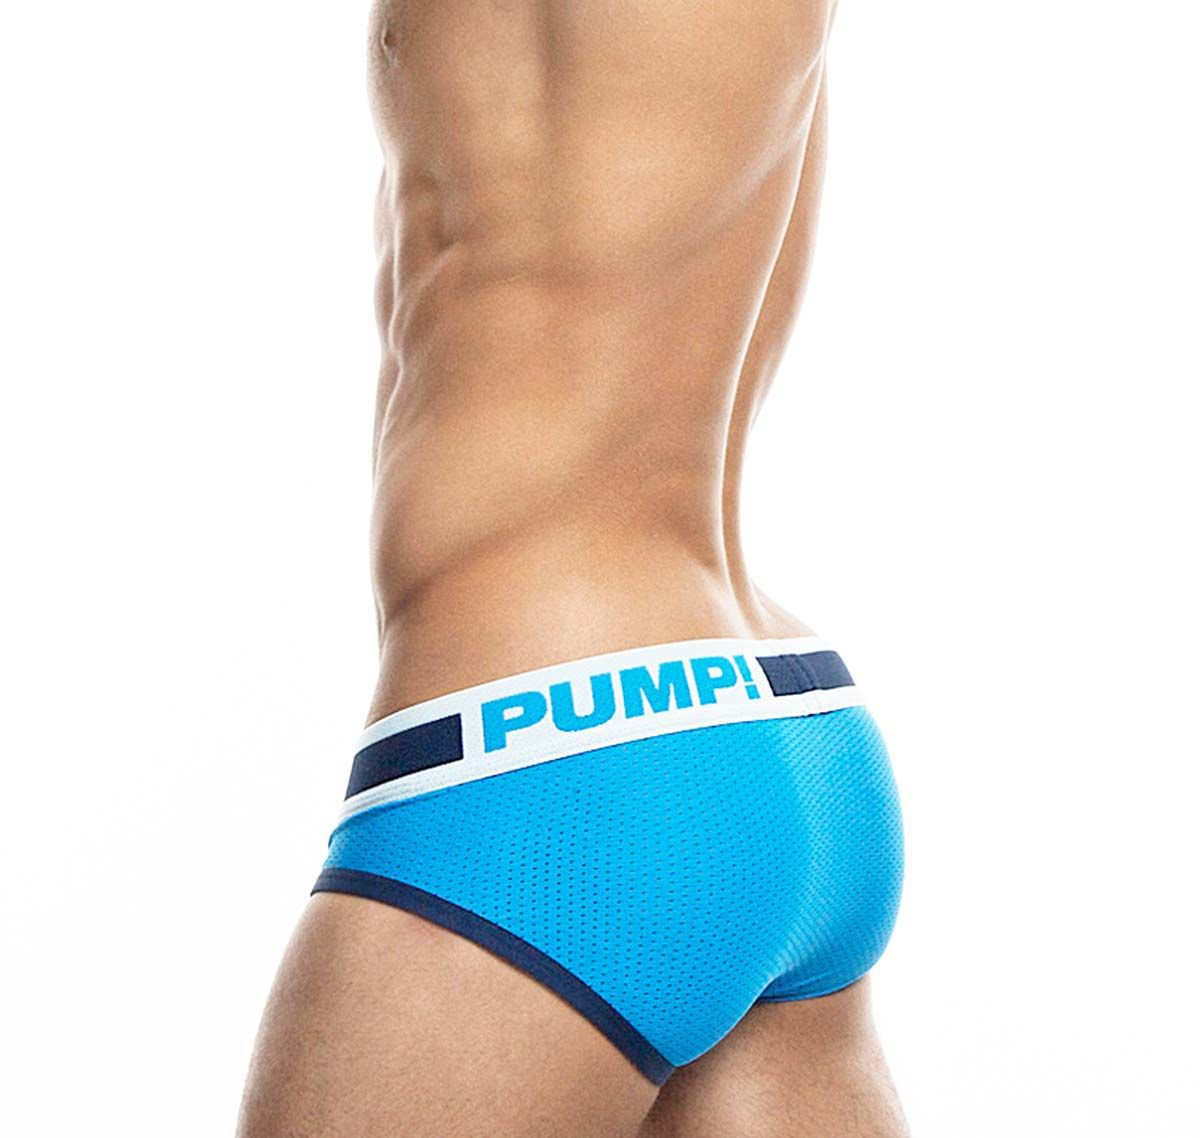 Pump! Slip TRUE BLUE BRIEF 12031, blau